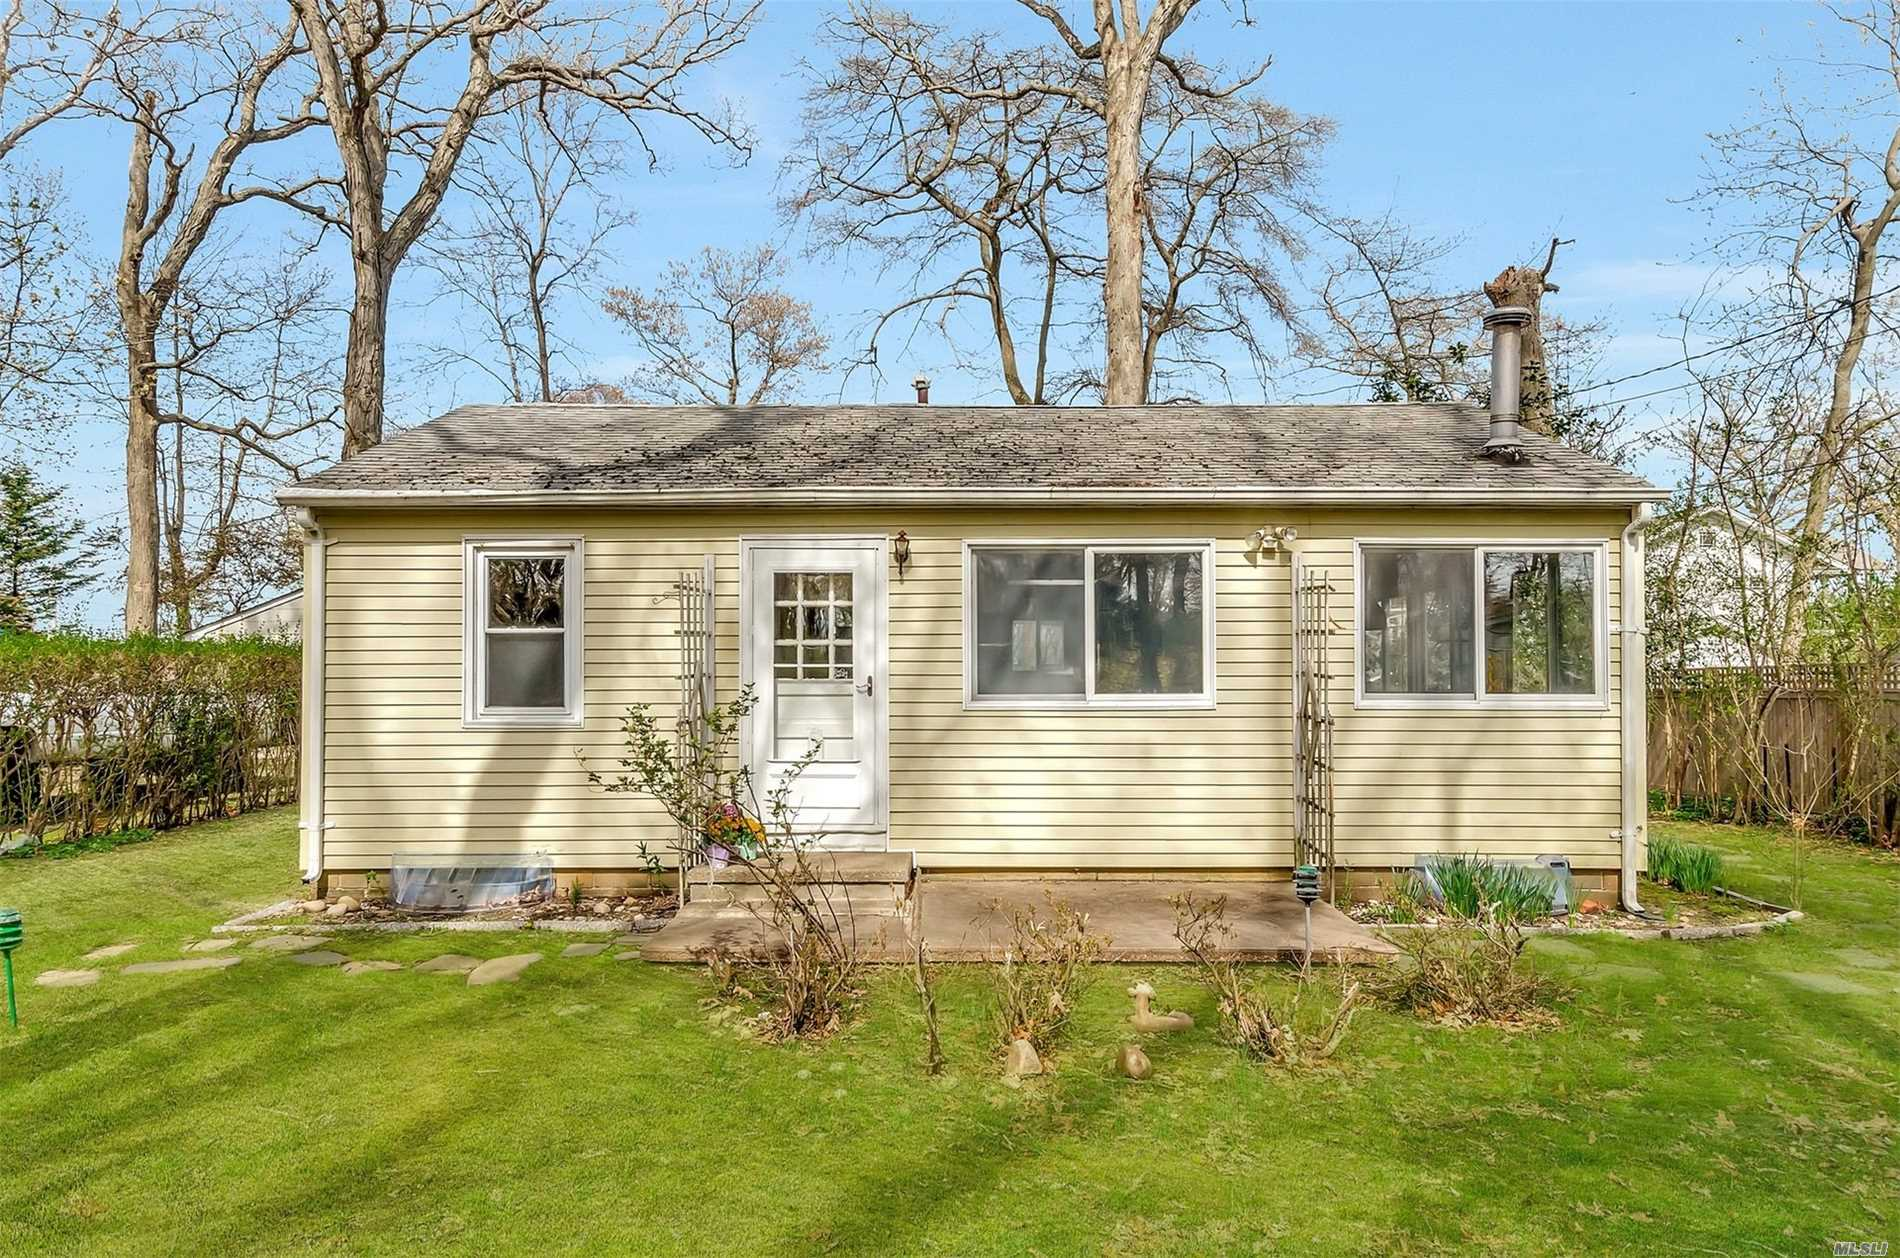 Greenport Beach Cottage - 2 bedroom, 1 bath starter home or investment property just steps to Bay beach overlooking Shelter Island. 1.5- car garage on private road...will not last!